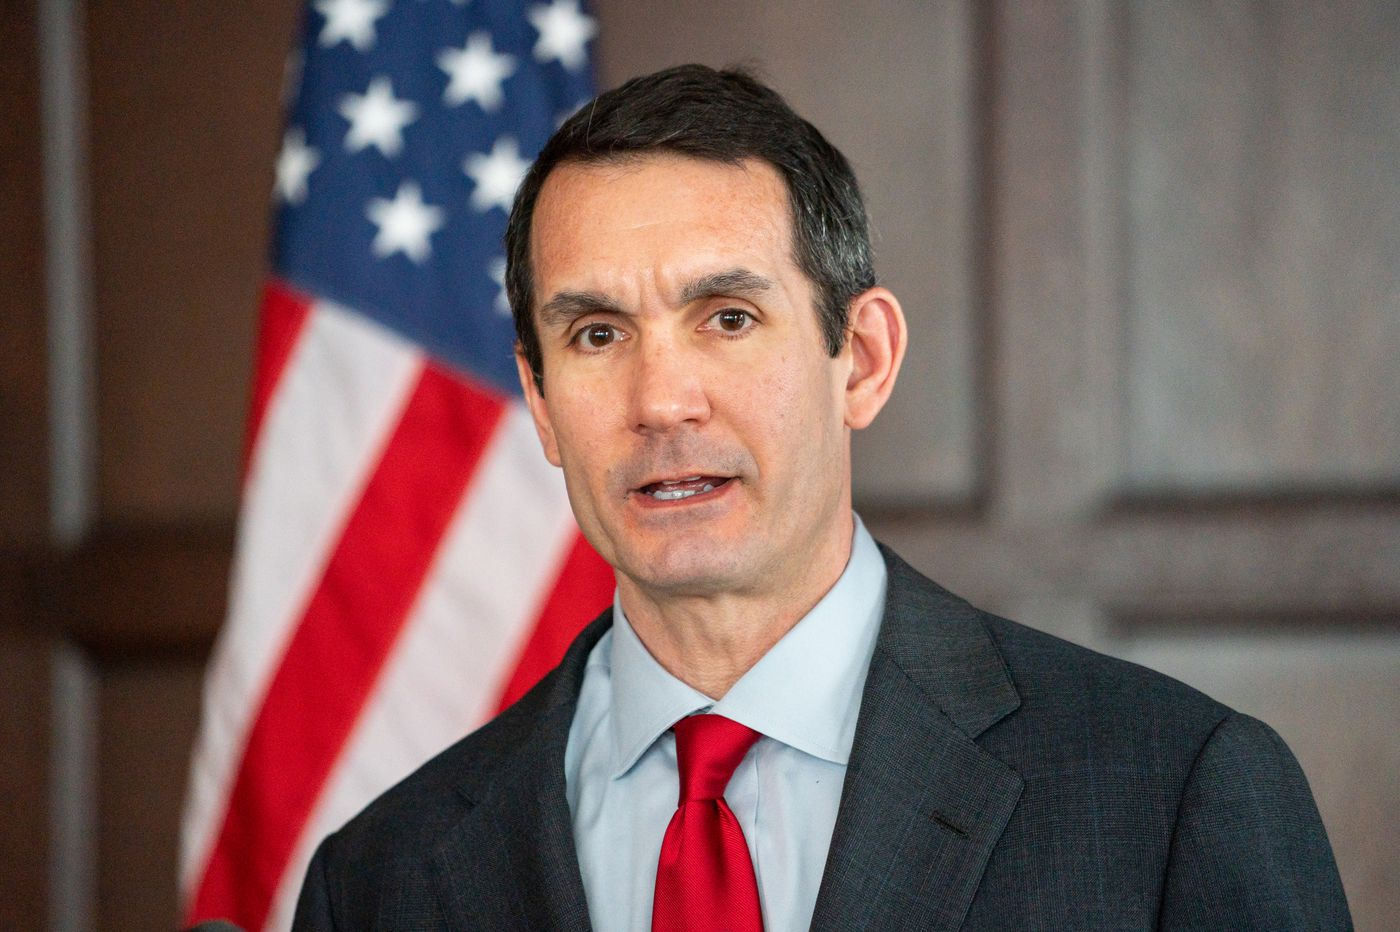 Pa. Auditor General Eugene DePasquale files to run against U.S. Rep. Scott Perry